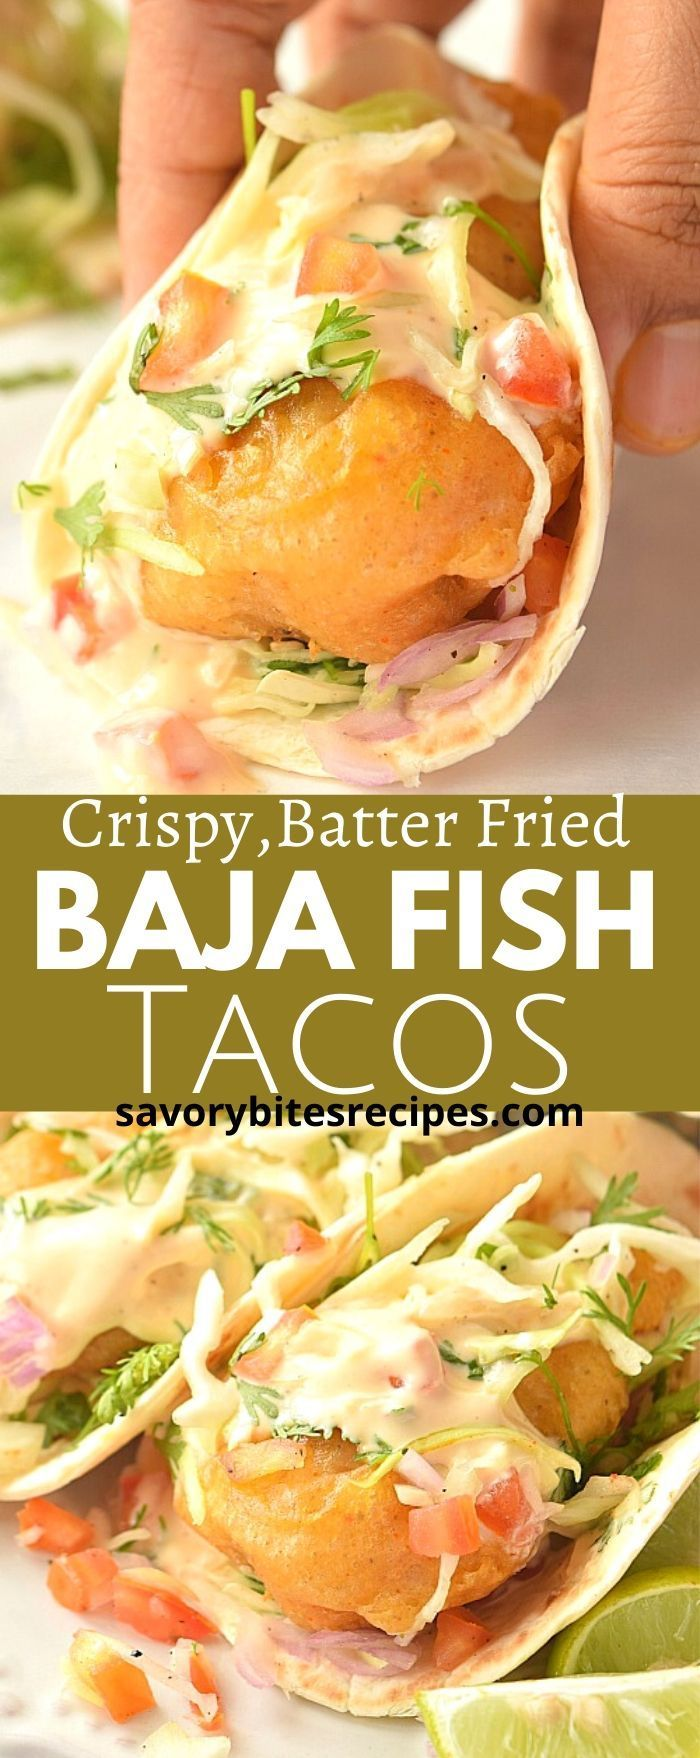 Crispy Batter Fried Baja Fish Tacos!